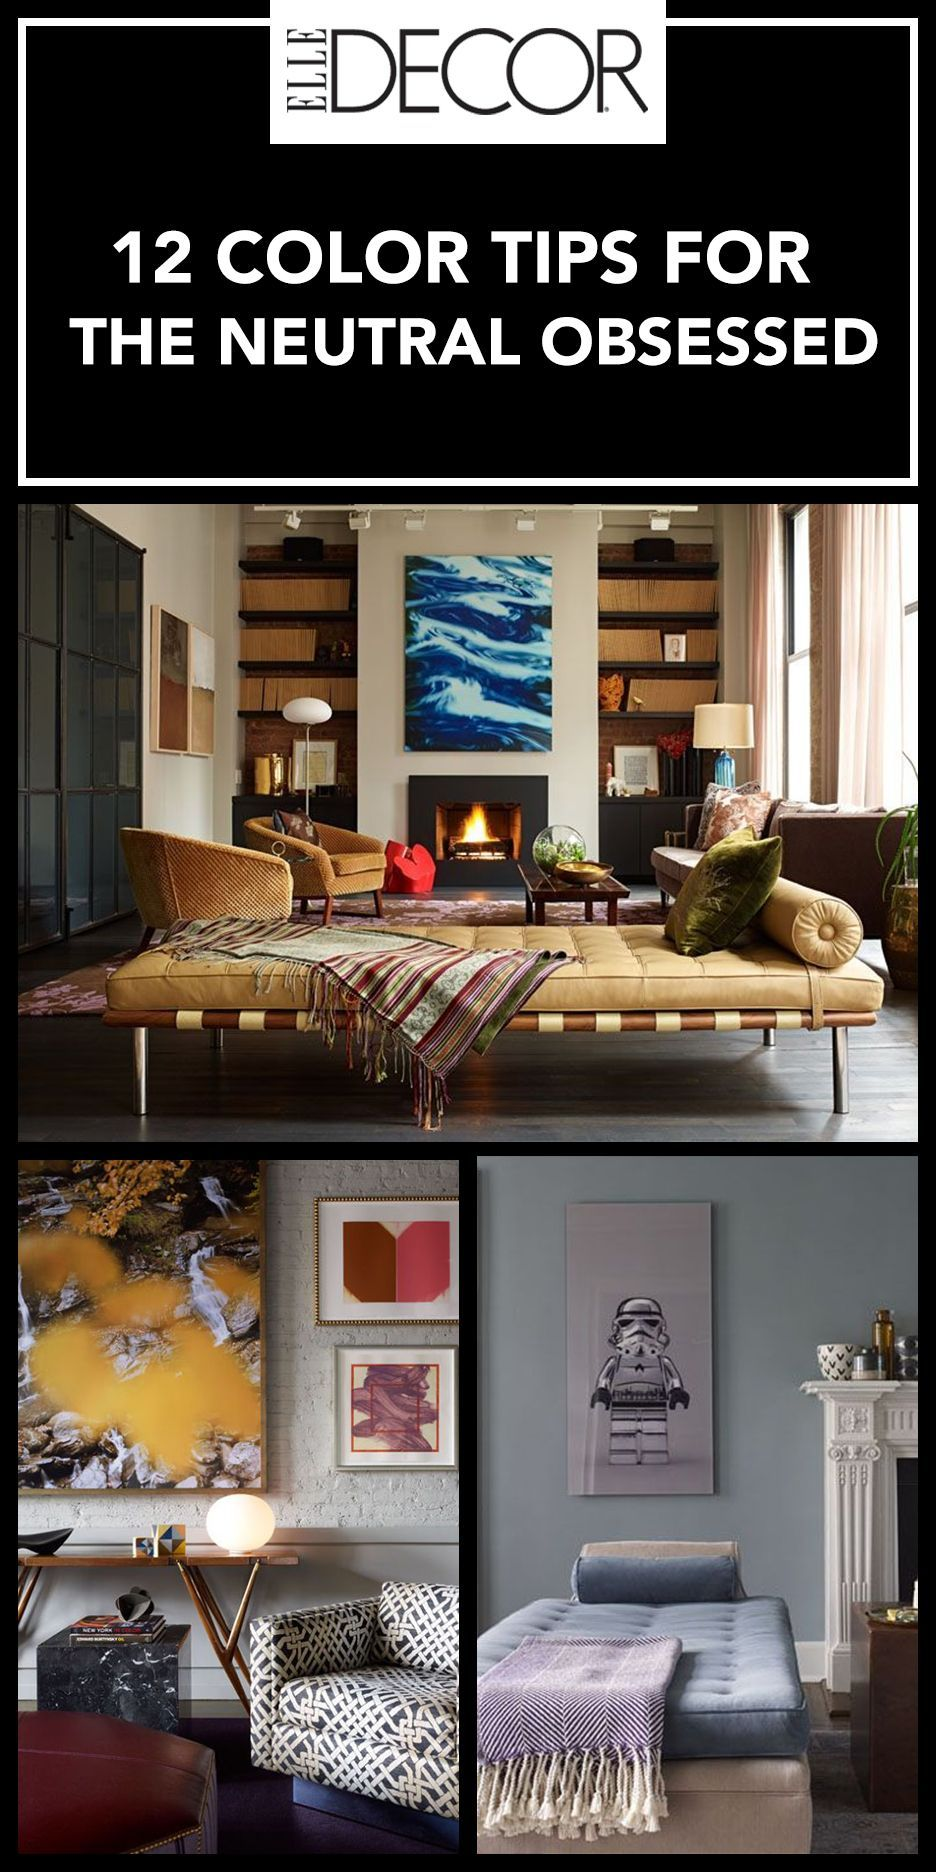 Interior Color Tips For The Neutral Obsessed Interior